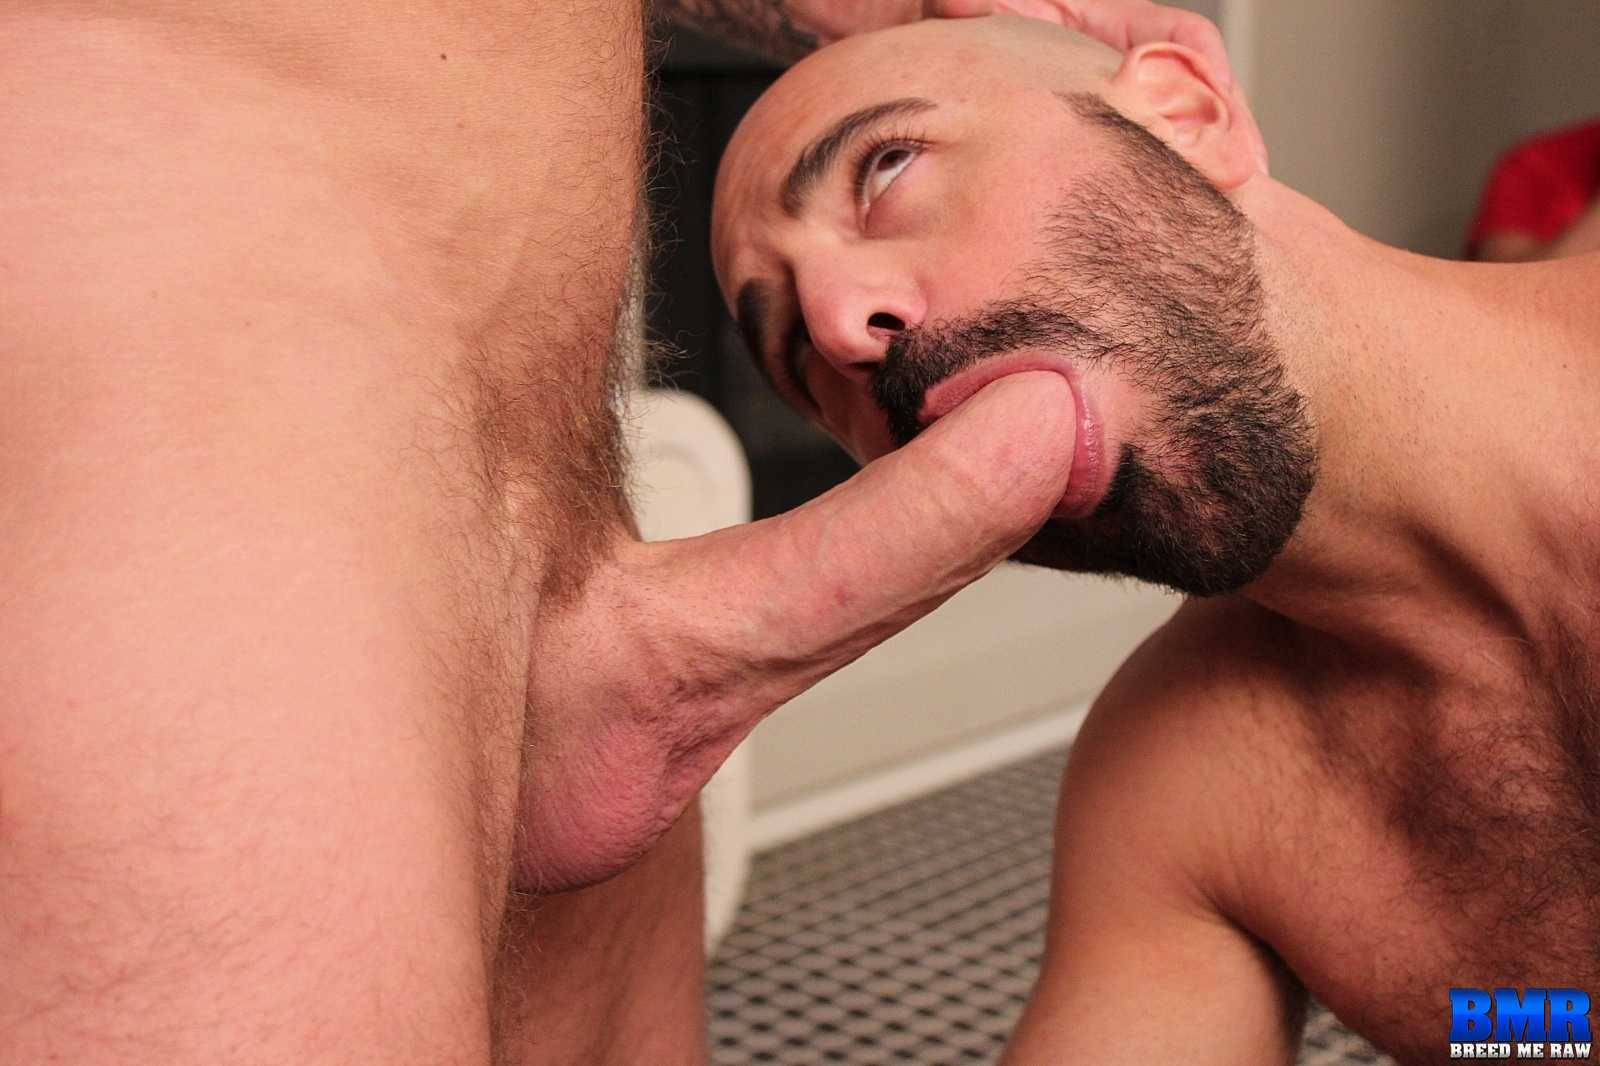 travis sweet in gay porn